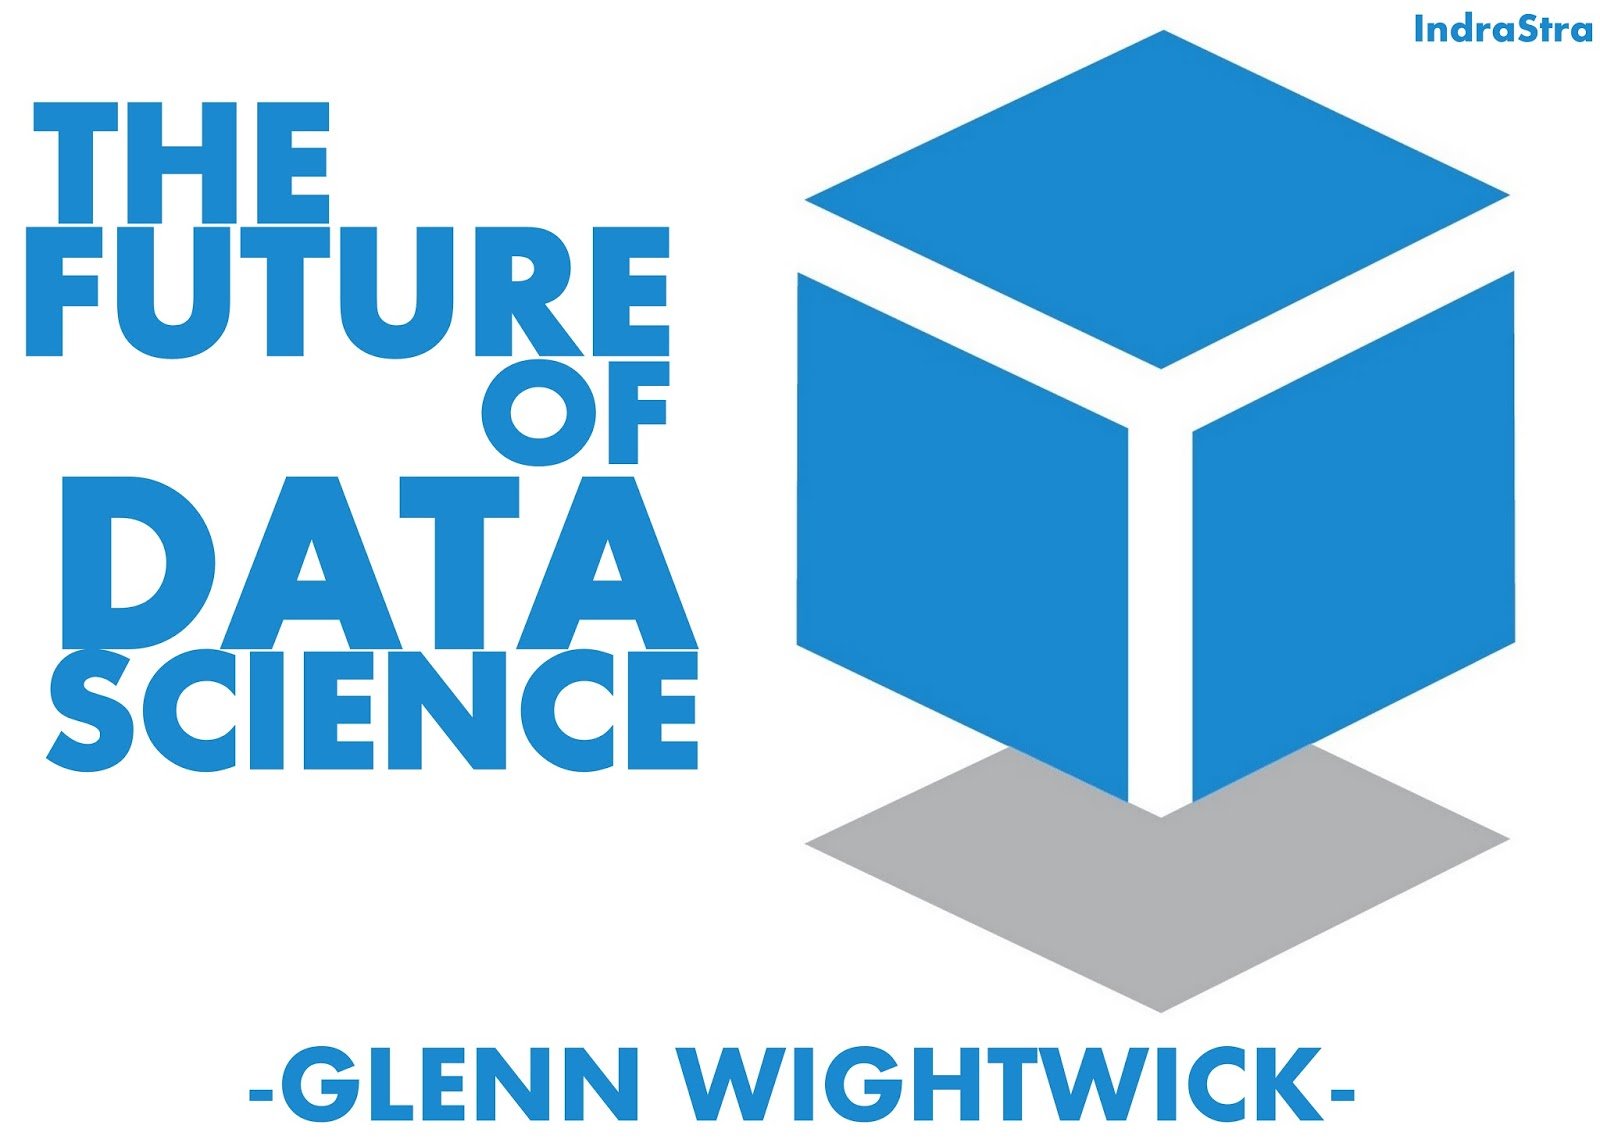 The Future of Data Science by Glenn Wightwick